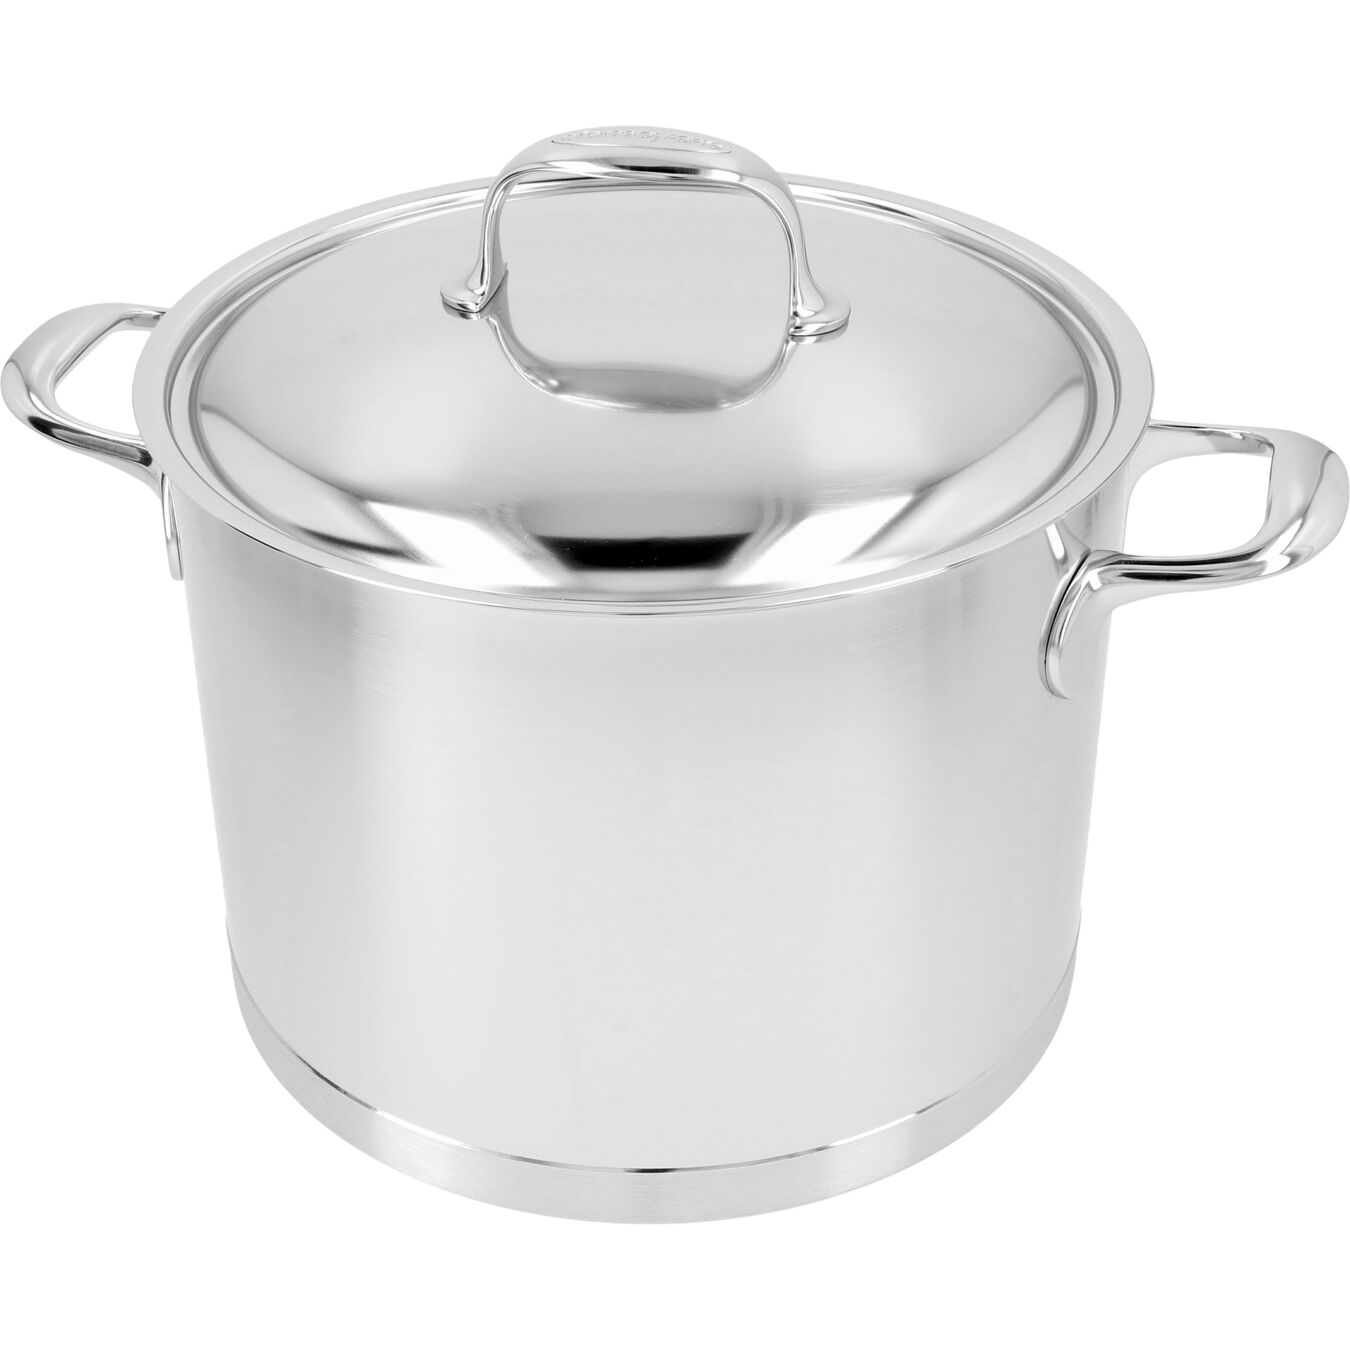 8 l 18/10 Stainless Steel Stock pot with lid,,large 6